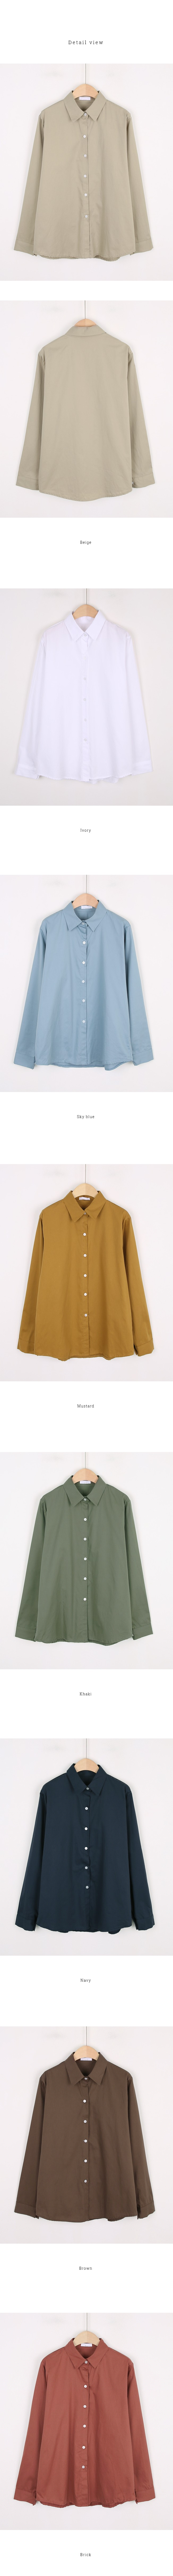 Mani color cotton shirt